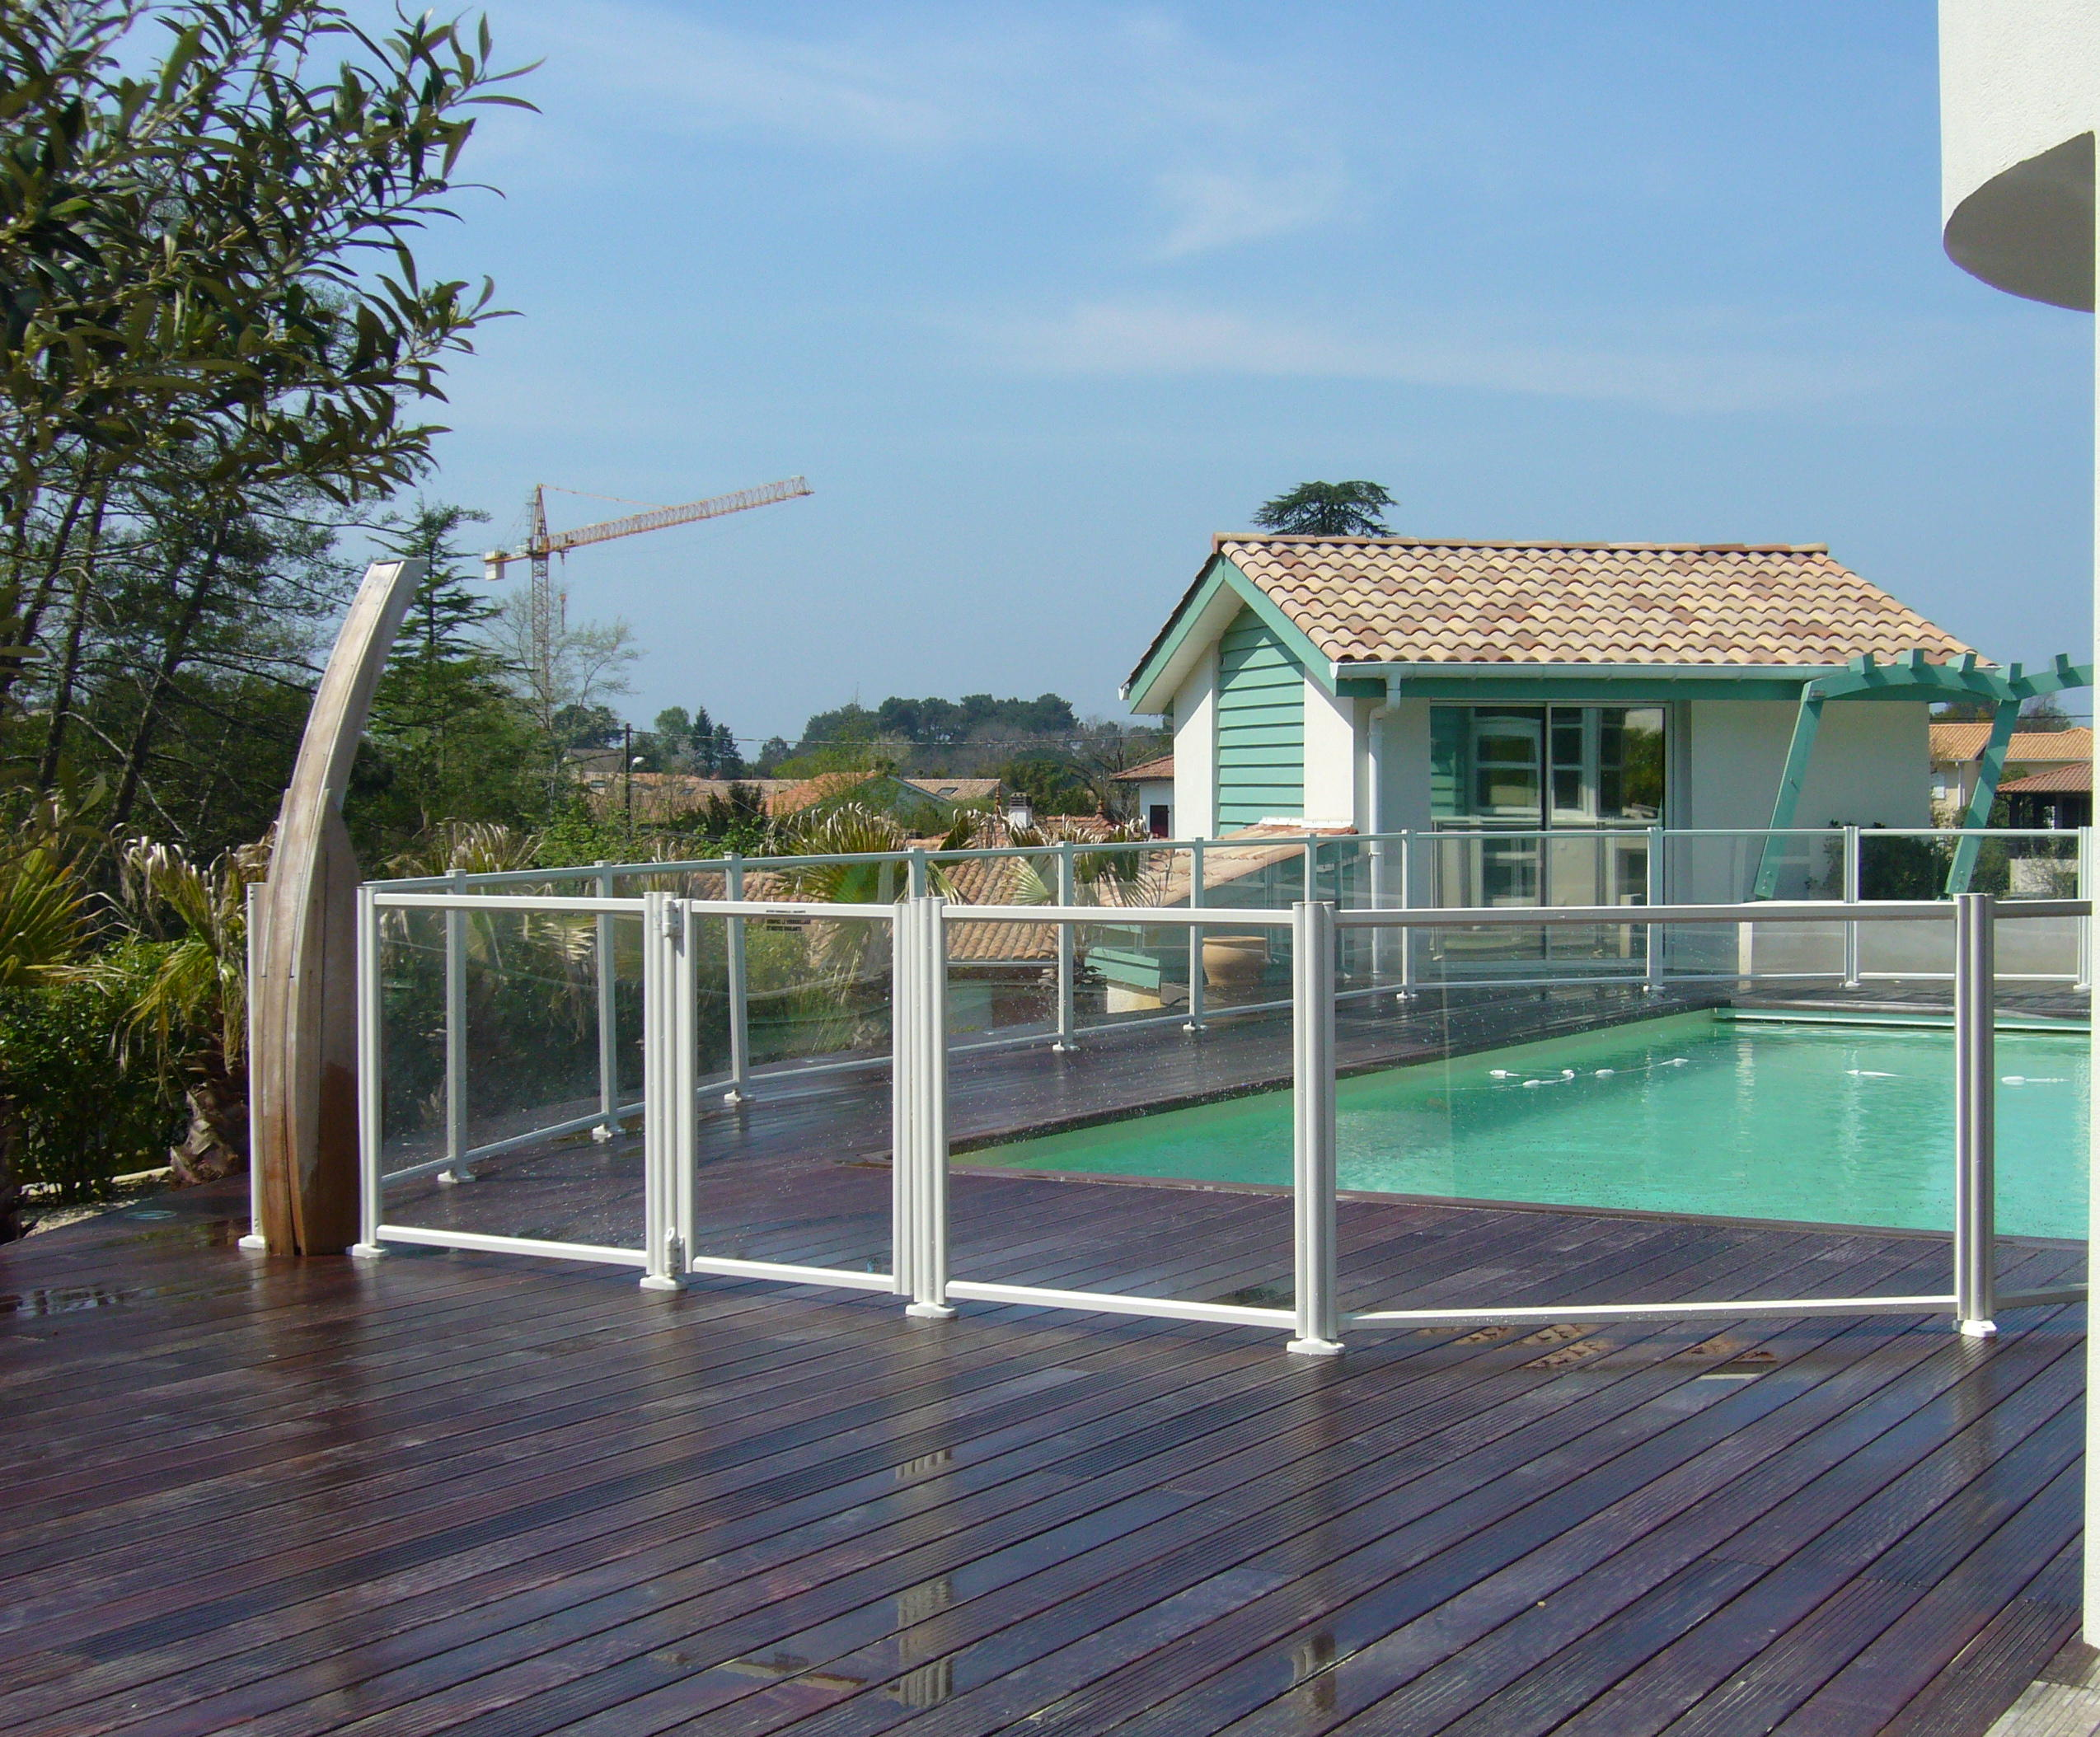 Votre cl ture de piscine transparente pas cher barri re for Cloture aluminium pour piscine